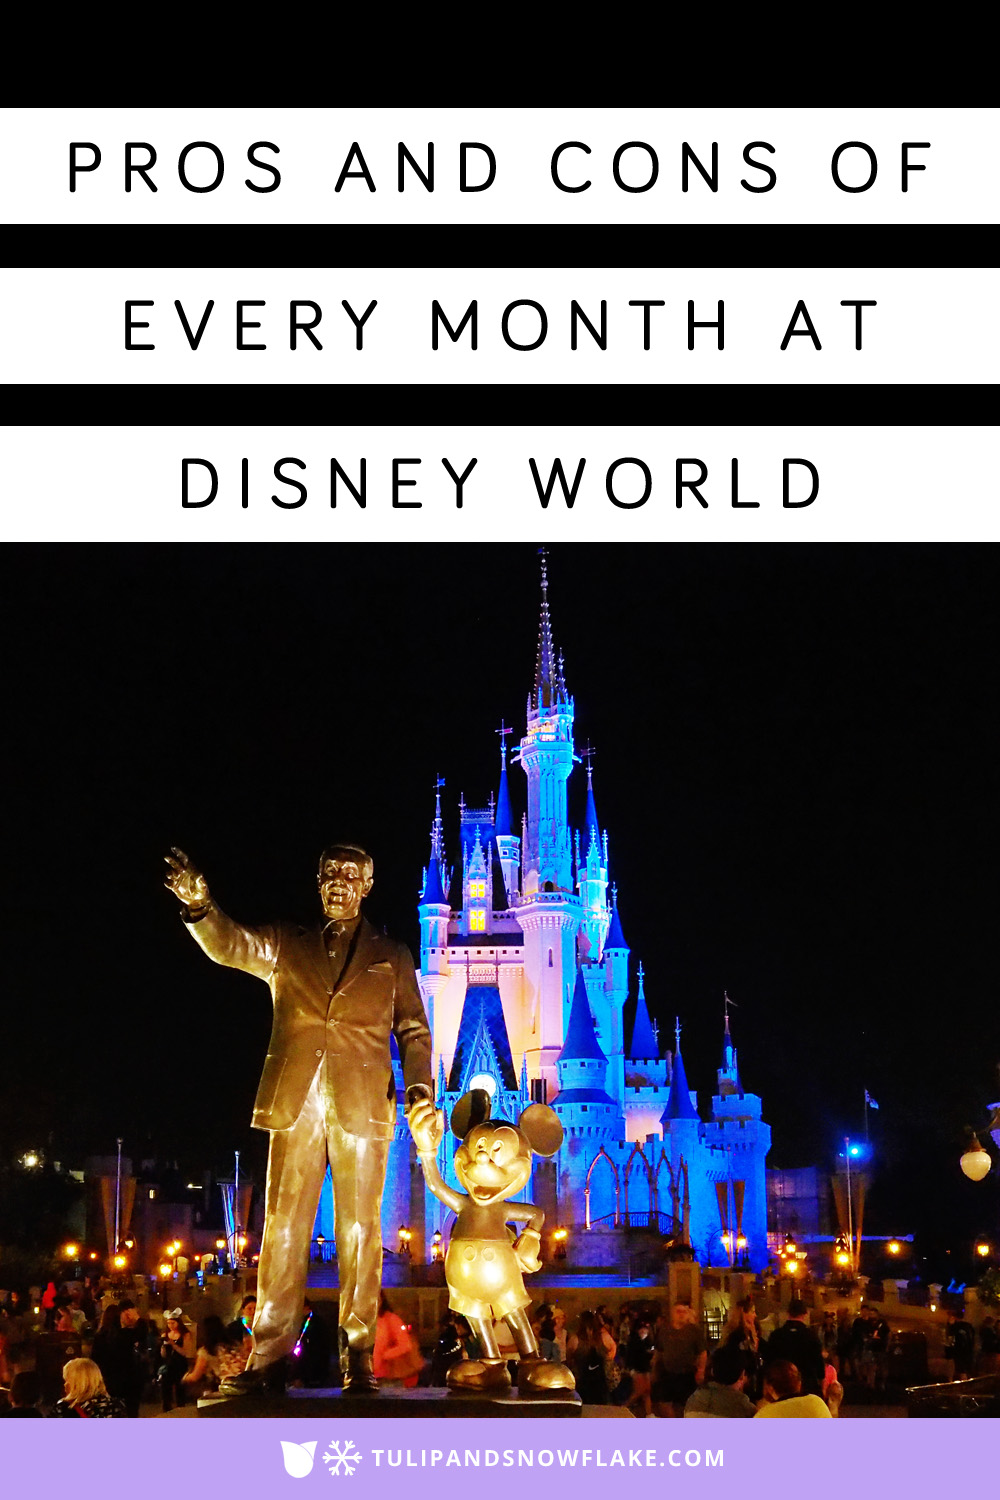 Pros and cons of every month at Disney World